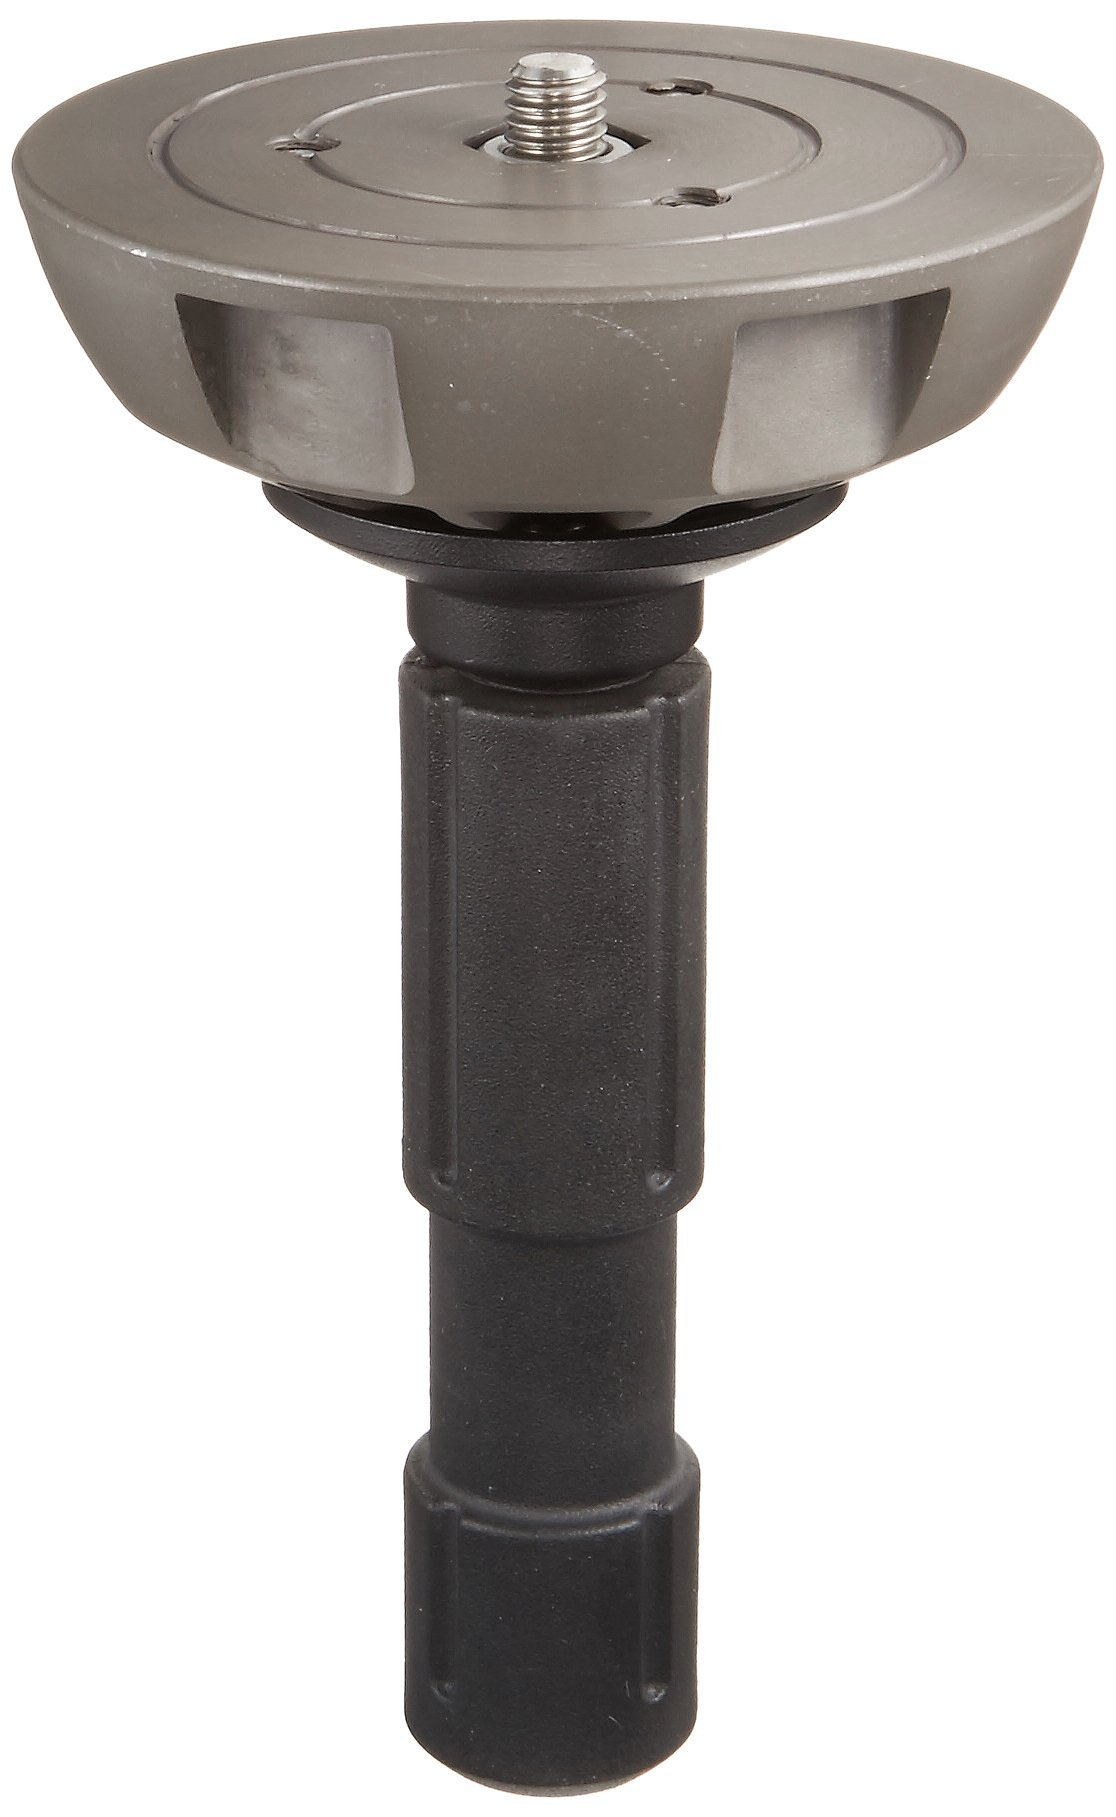 Manfrotto 500BALL 100mm Half Ball Leveler with 3/8-Inch Screw for 100mm Bowl Tripods - Replaces 3141BALL (Black)